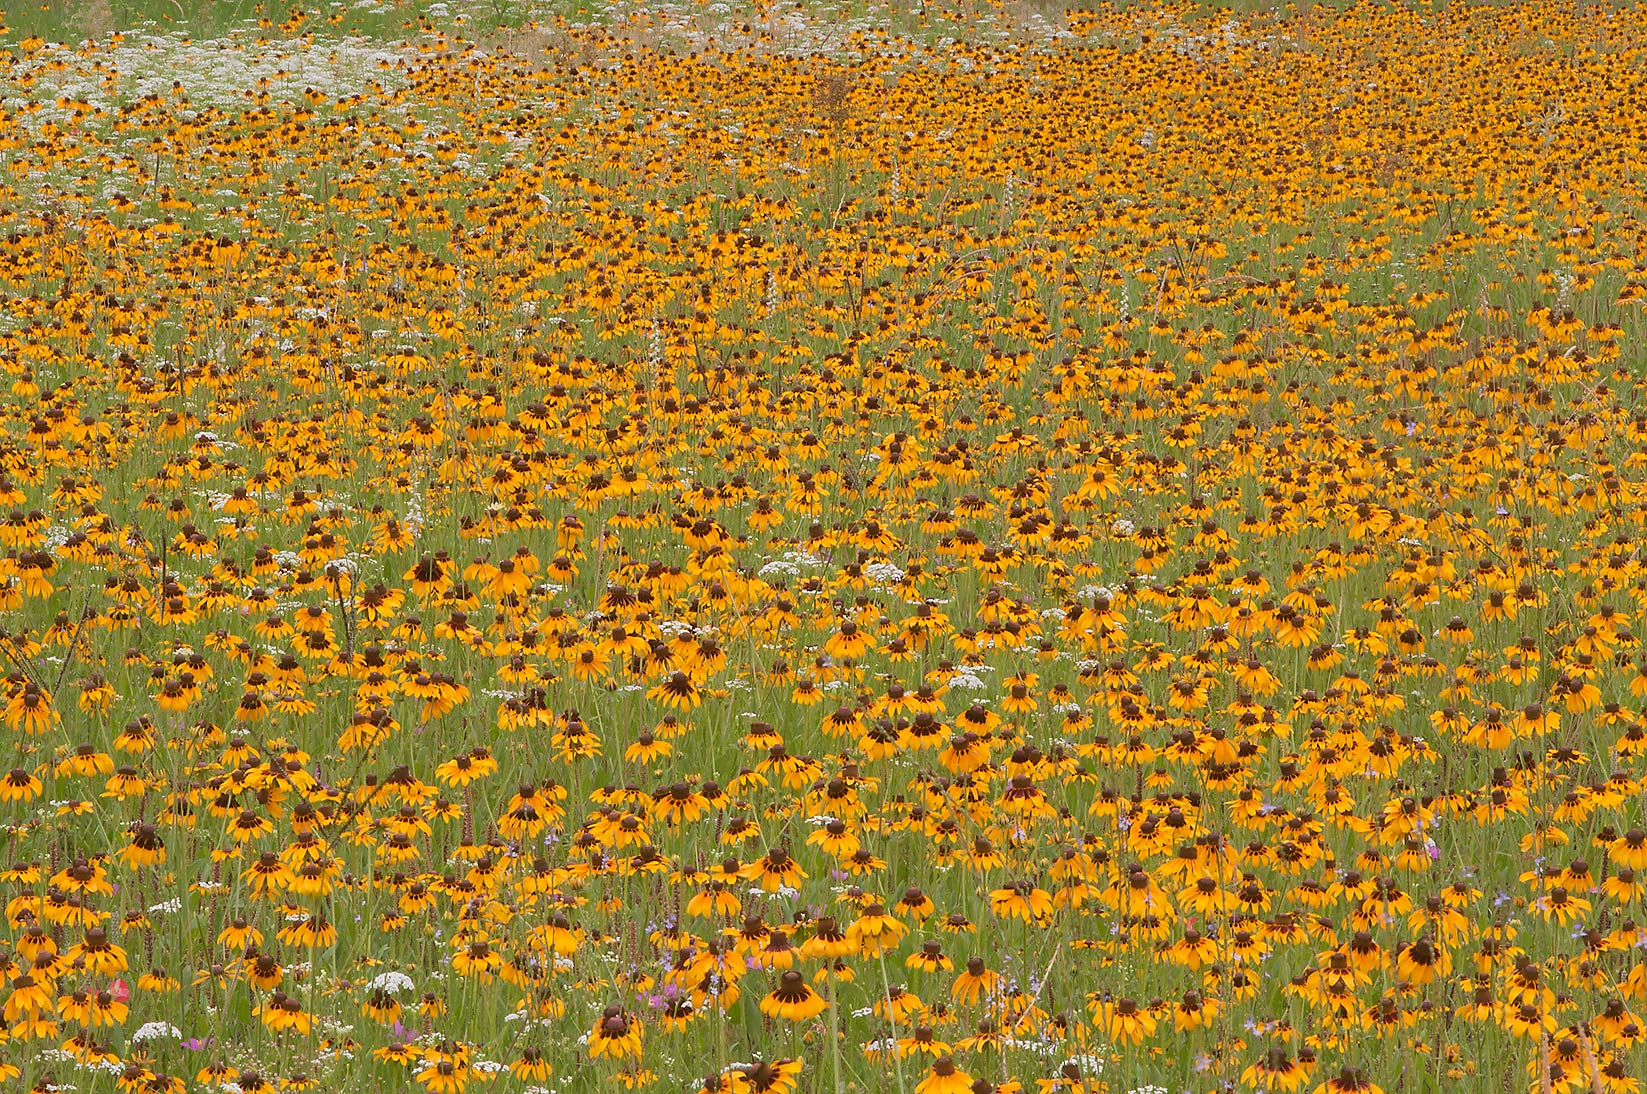 Field Of Yellow Flowers Search In Pictures